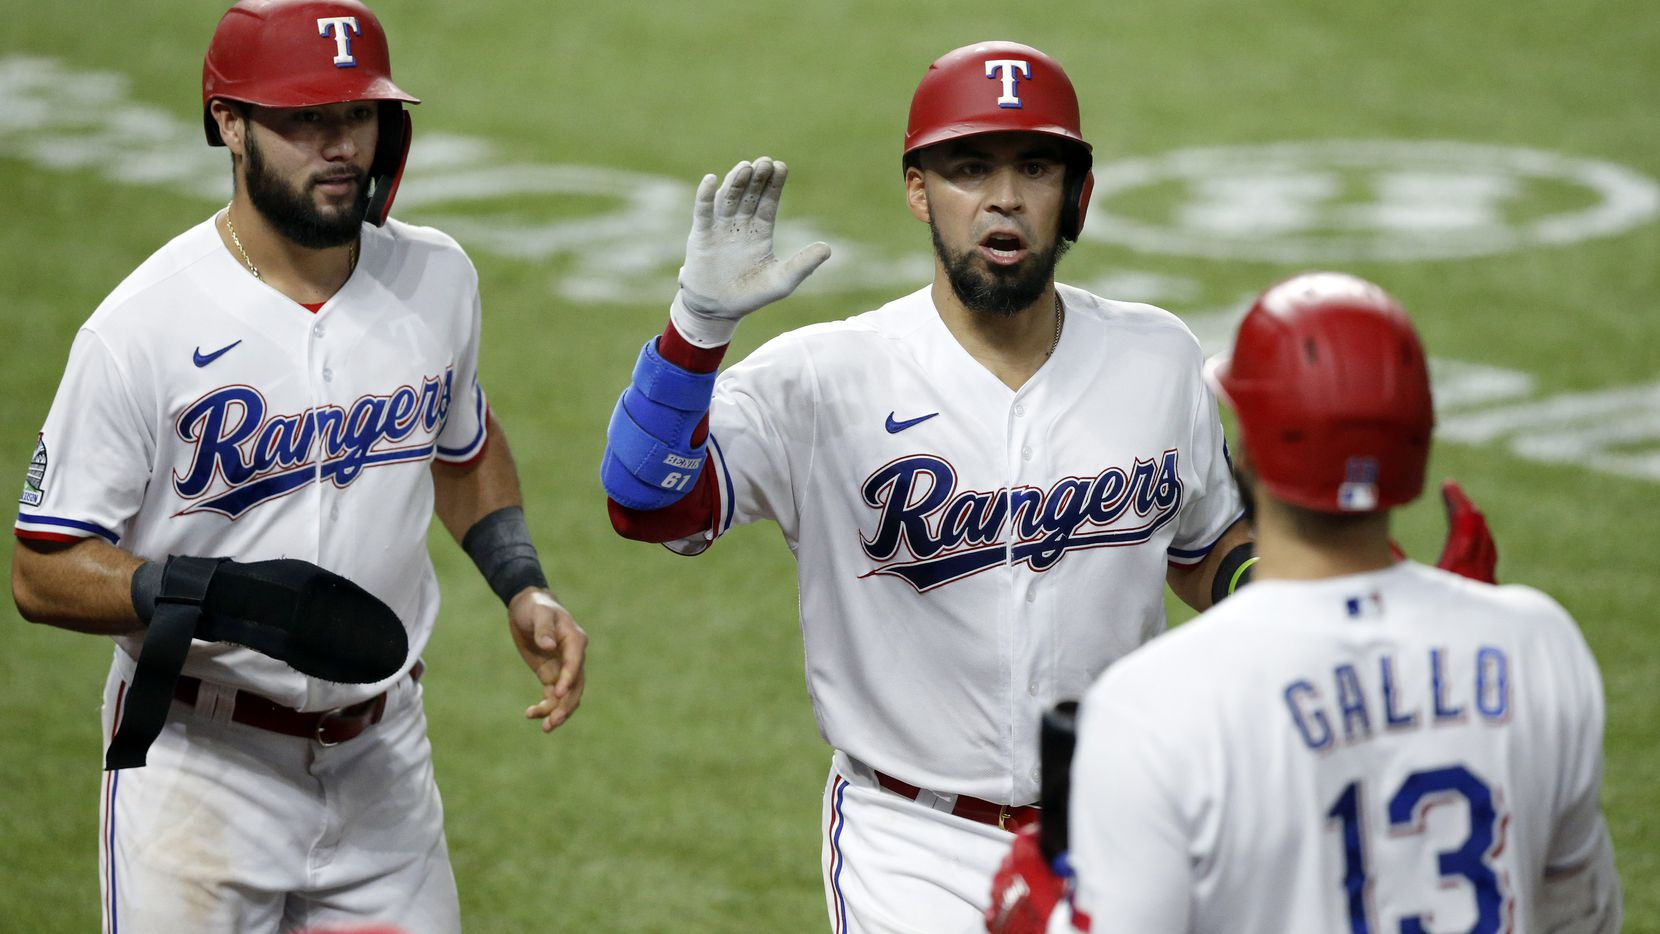 Texas Rangers short stop Isiah Kiner-Falefa (left) and Robinson Chirinos (center) are congratulated by teammate Joey Gallo (13) after scoring during the fifth inning at Globe Life Field in Arlington, Texas,Tuesday, August 25, 2020.